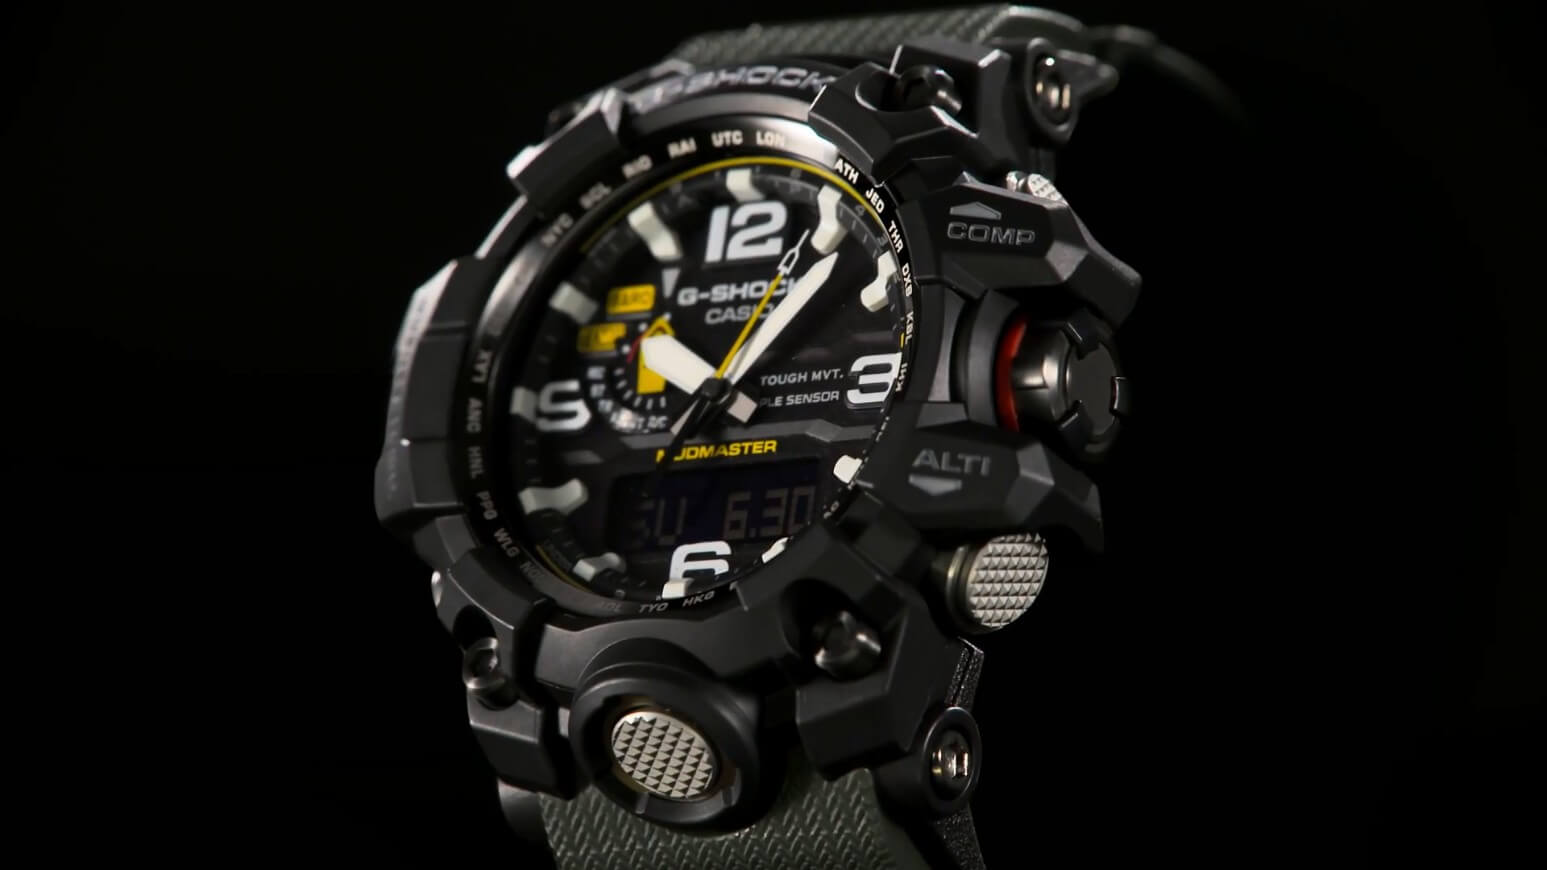 Casio G-Shock GWG one thousand-1A3 Mudmaster hands on